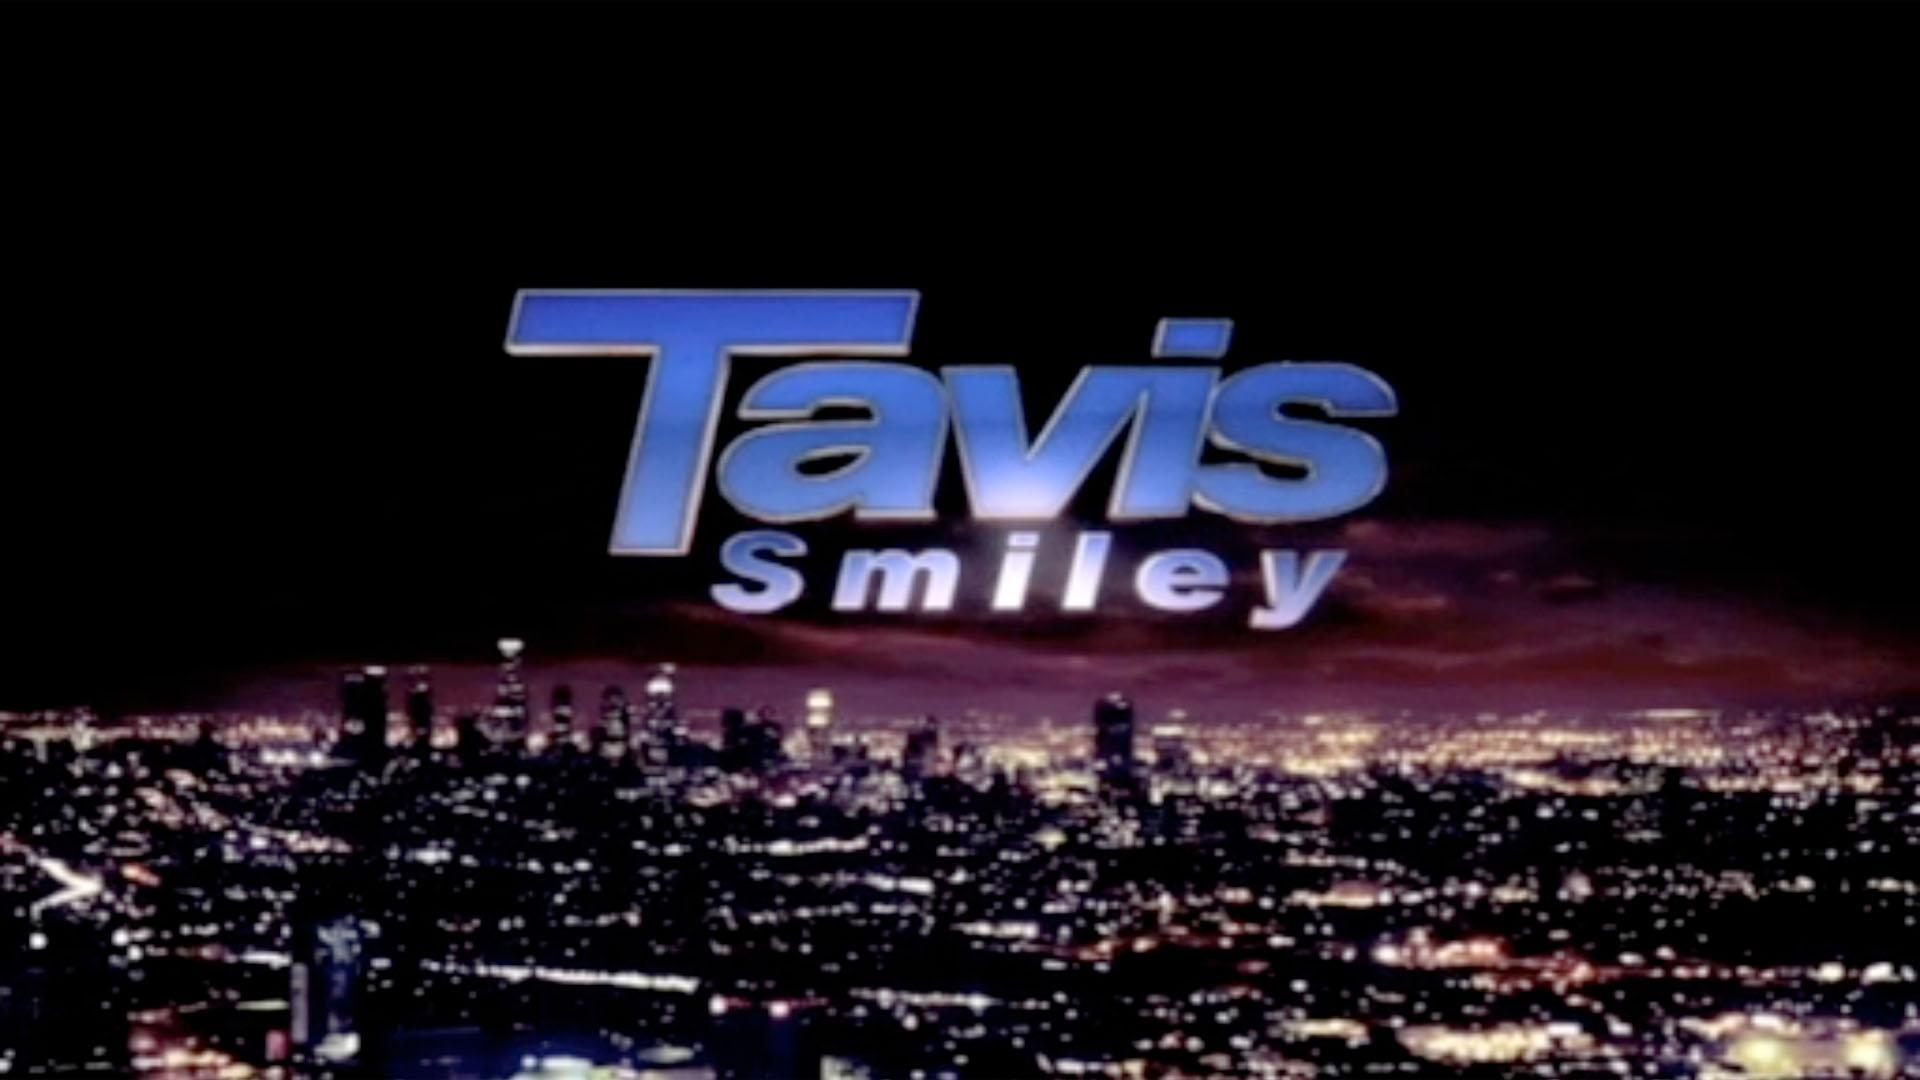 Tavis Smiley: Interviews